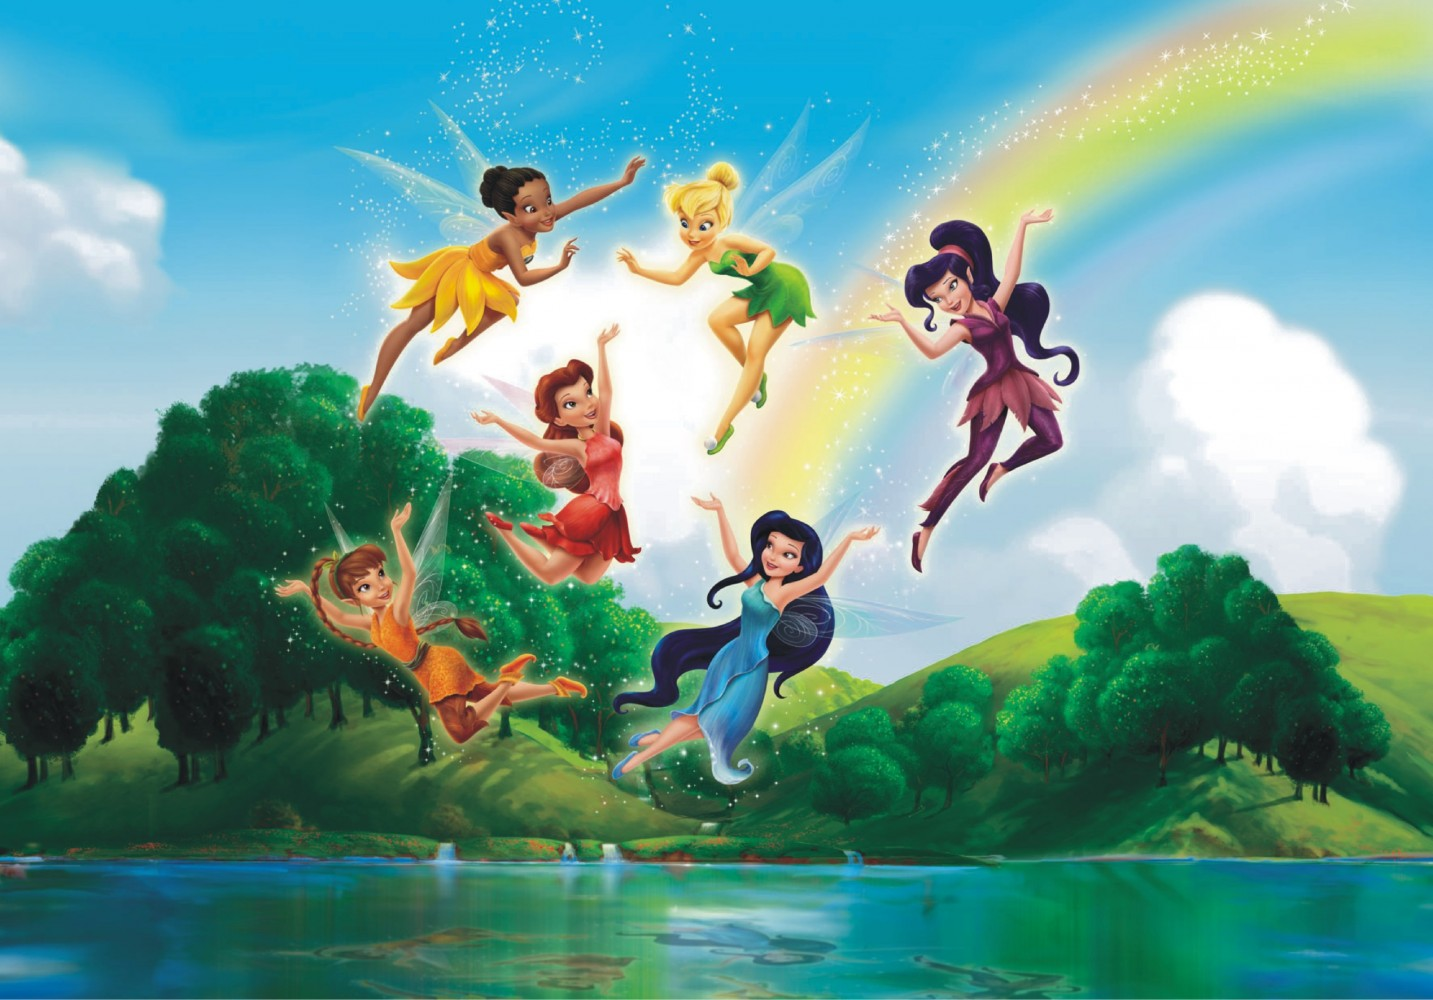 Wall mural wallpaper Disney Tinkerbell - 239.0KB